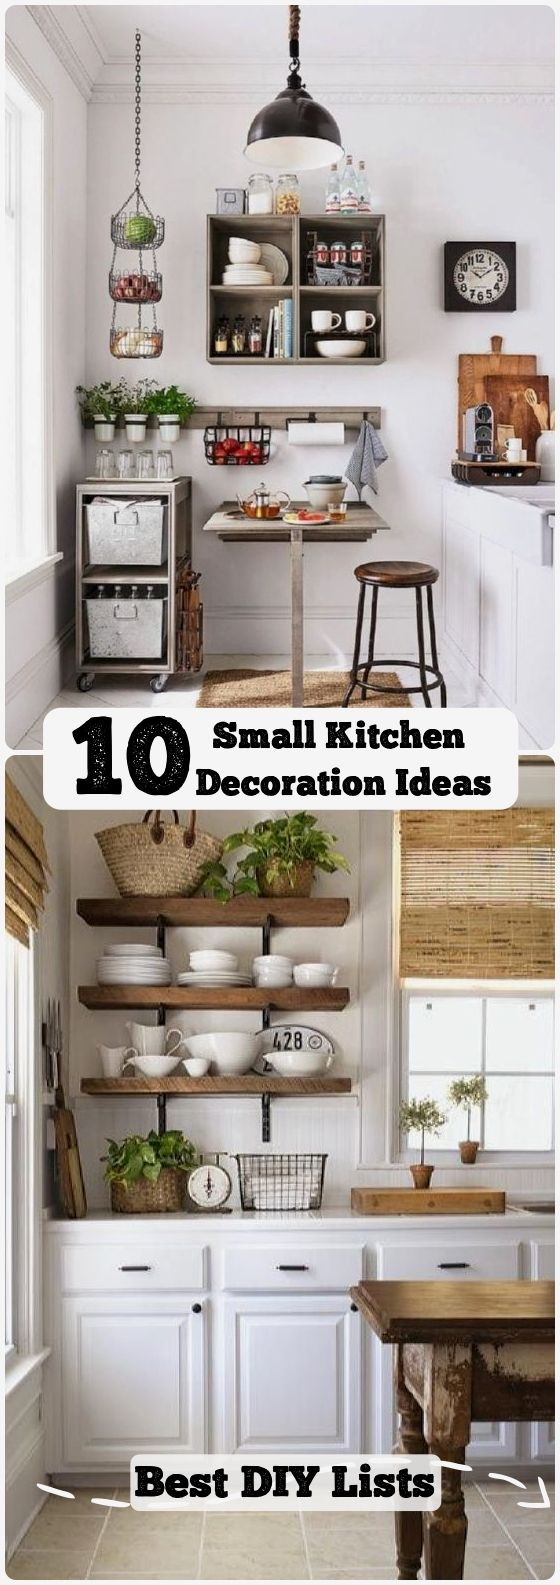 10 Clever Ideas For Small Kitchen Decoration Best Diy Lists Kitchen Remodel Small Small Kitchen Decor Small Kitchen Decoration